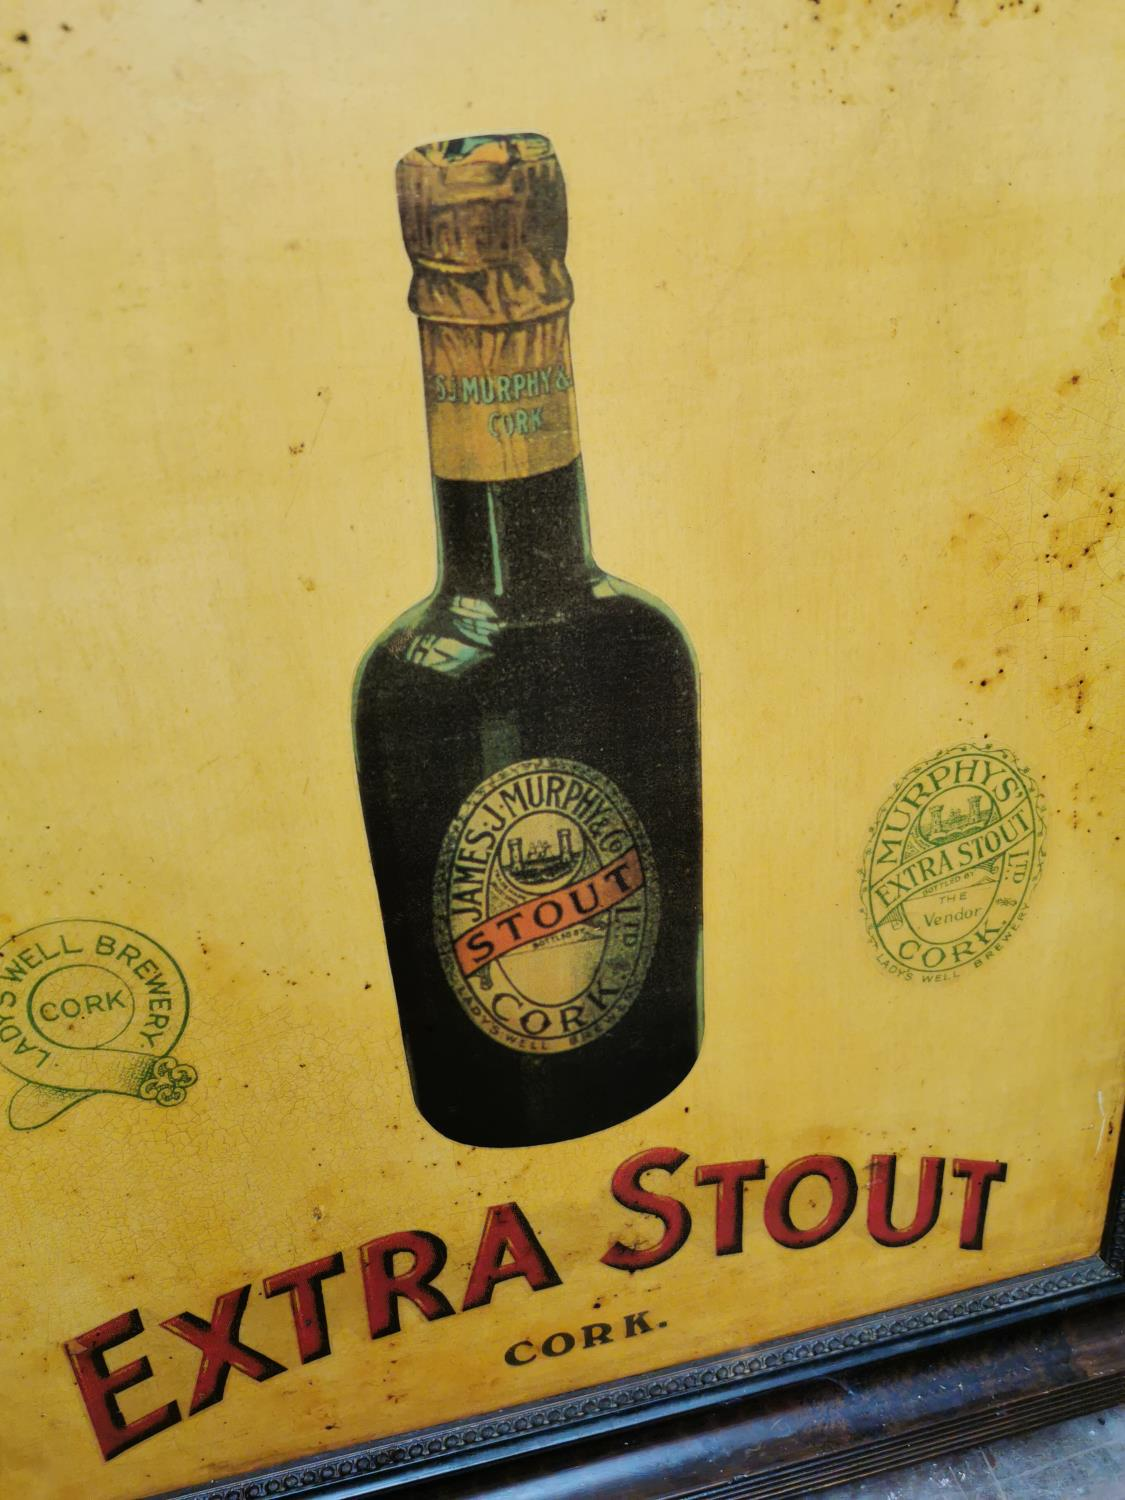 Murphy's Extra Stout Cork advertising sign. - Image 2 of 2